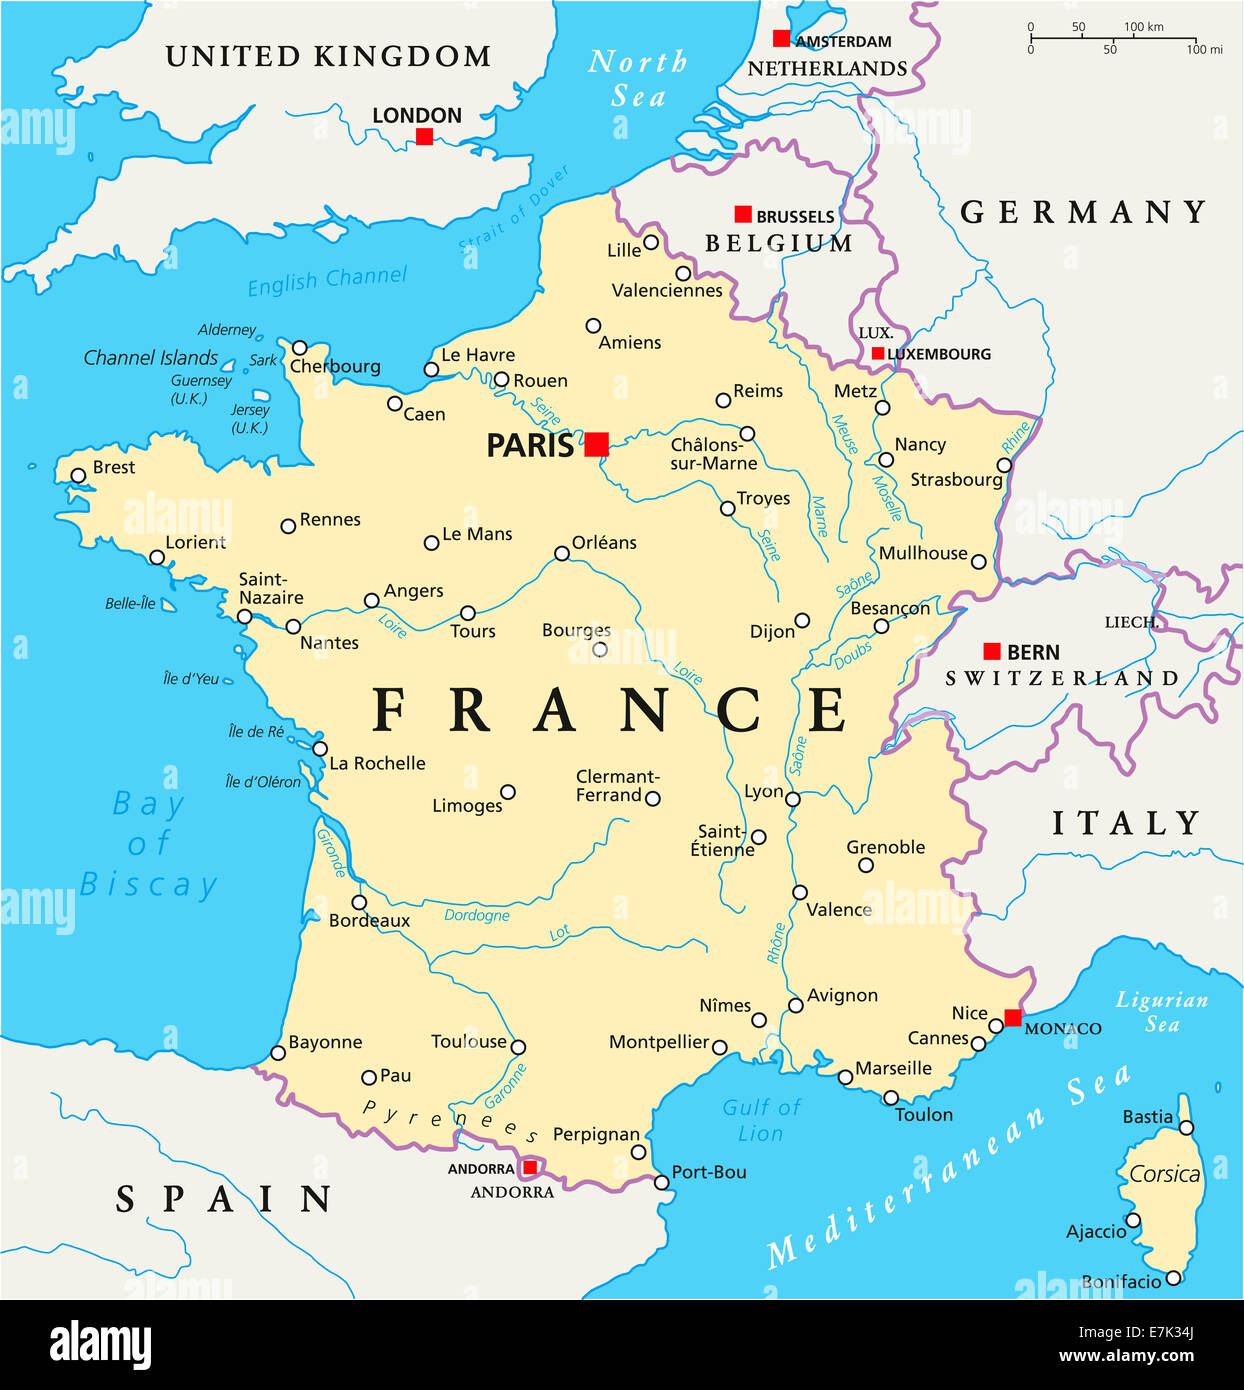 France Map Stock Photos France Map Stock Images Alamy